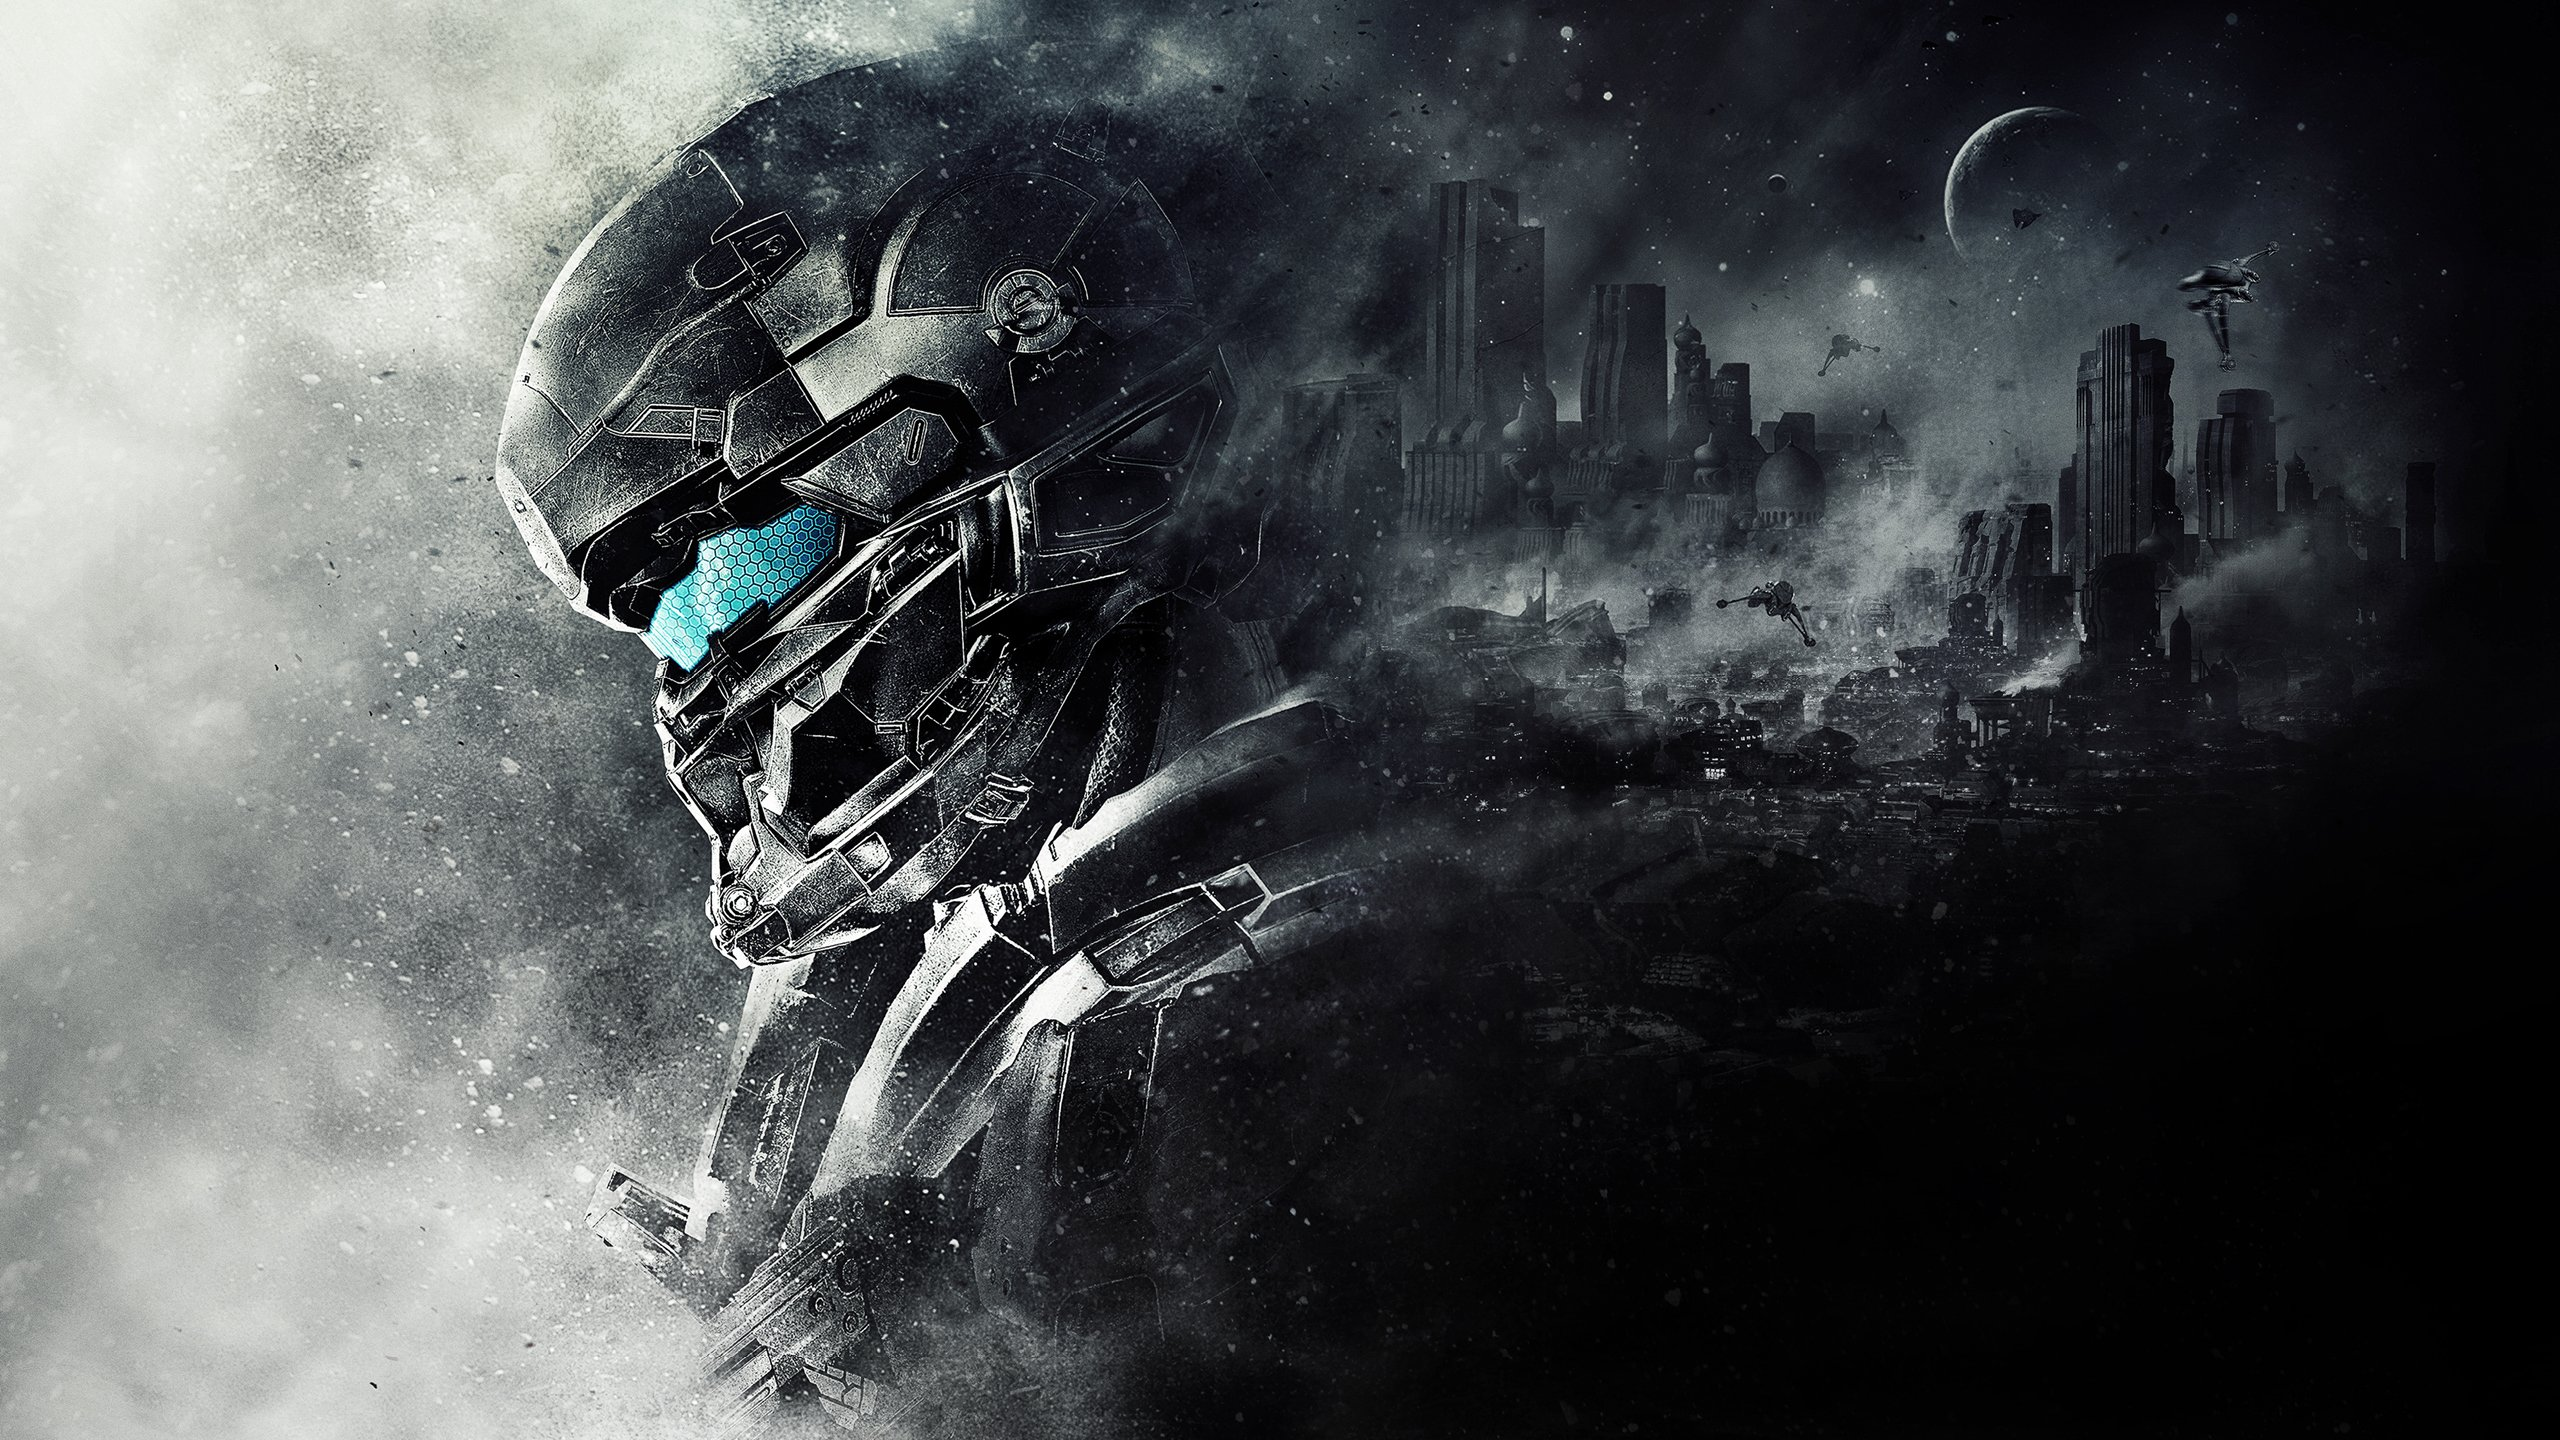 Spartan Locke Halo 5 Guardians Wallpapers HD Wallpapers 2560x1440